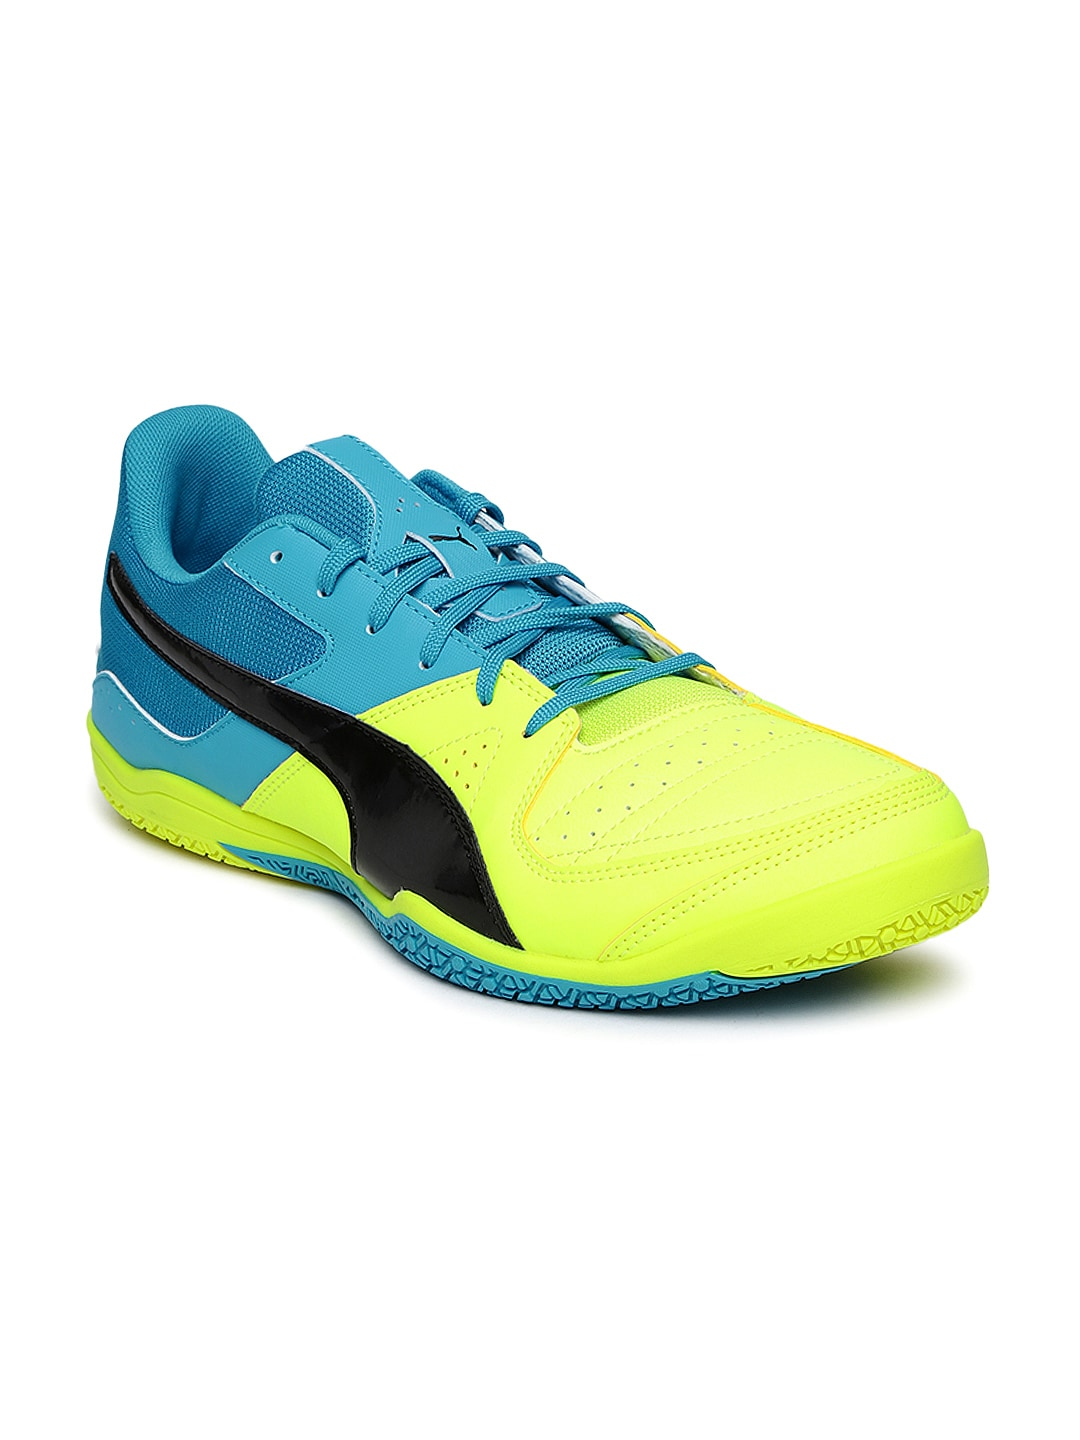 Puma 10344407 Men Neon Green And Blue Gavetto Sala Indoor Football Shoes-  Price in India 4d3fc78b1